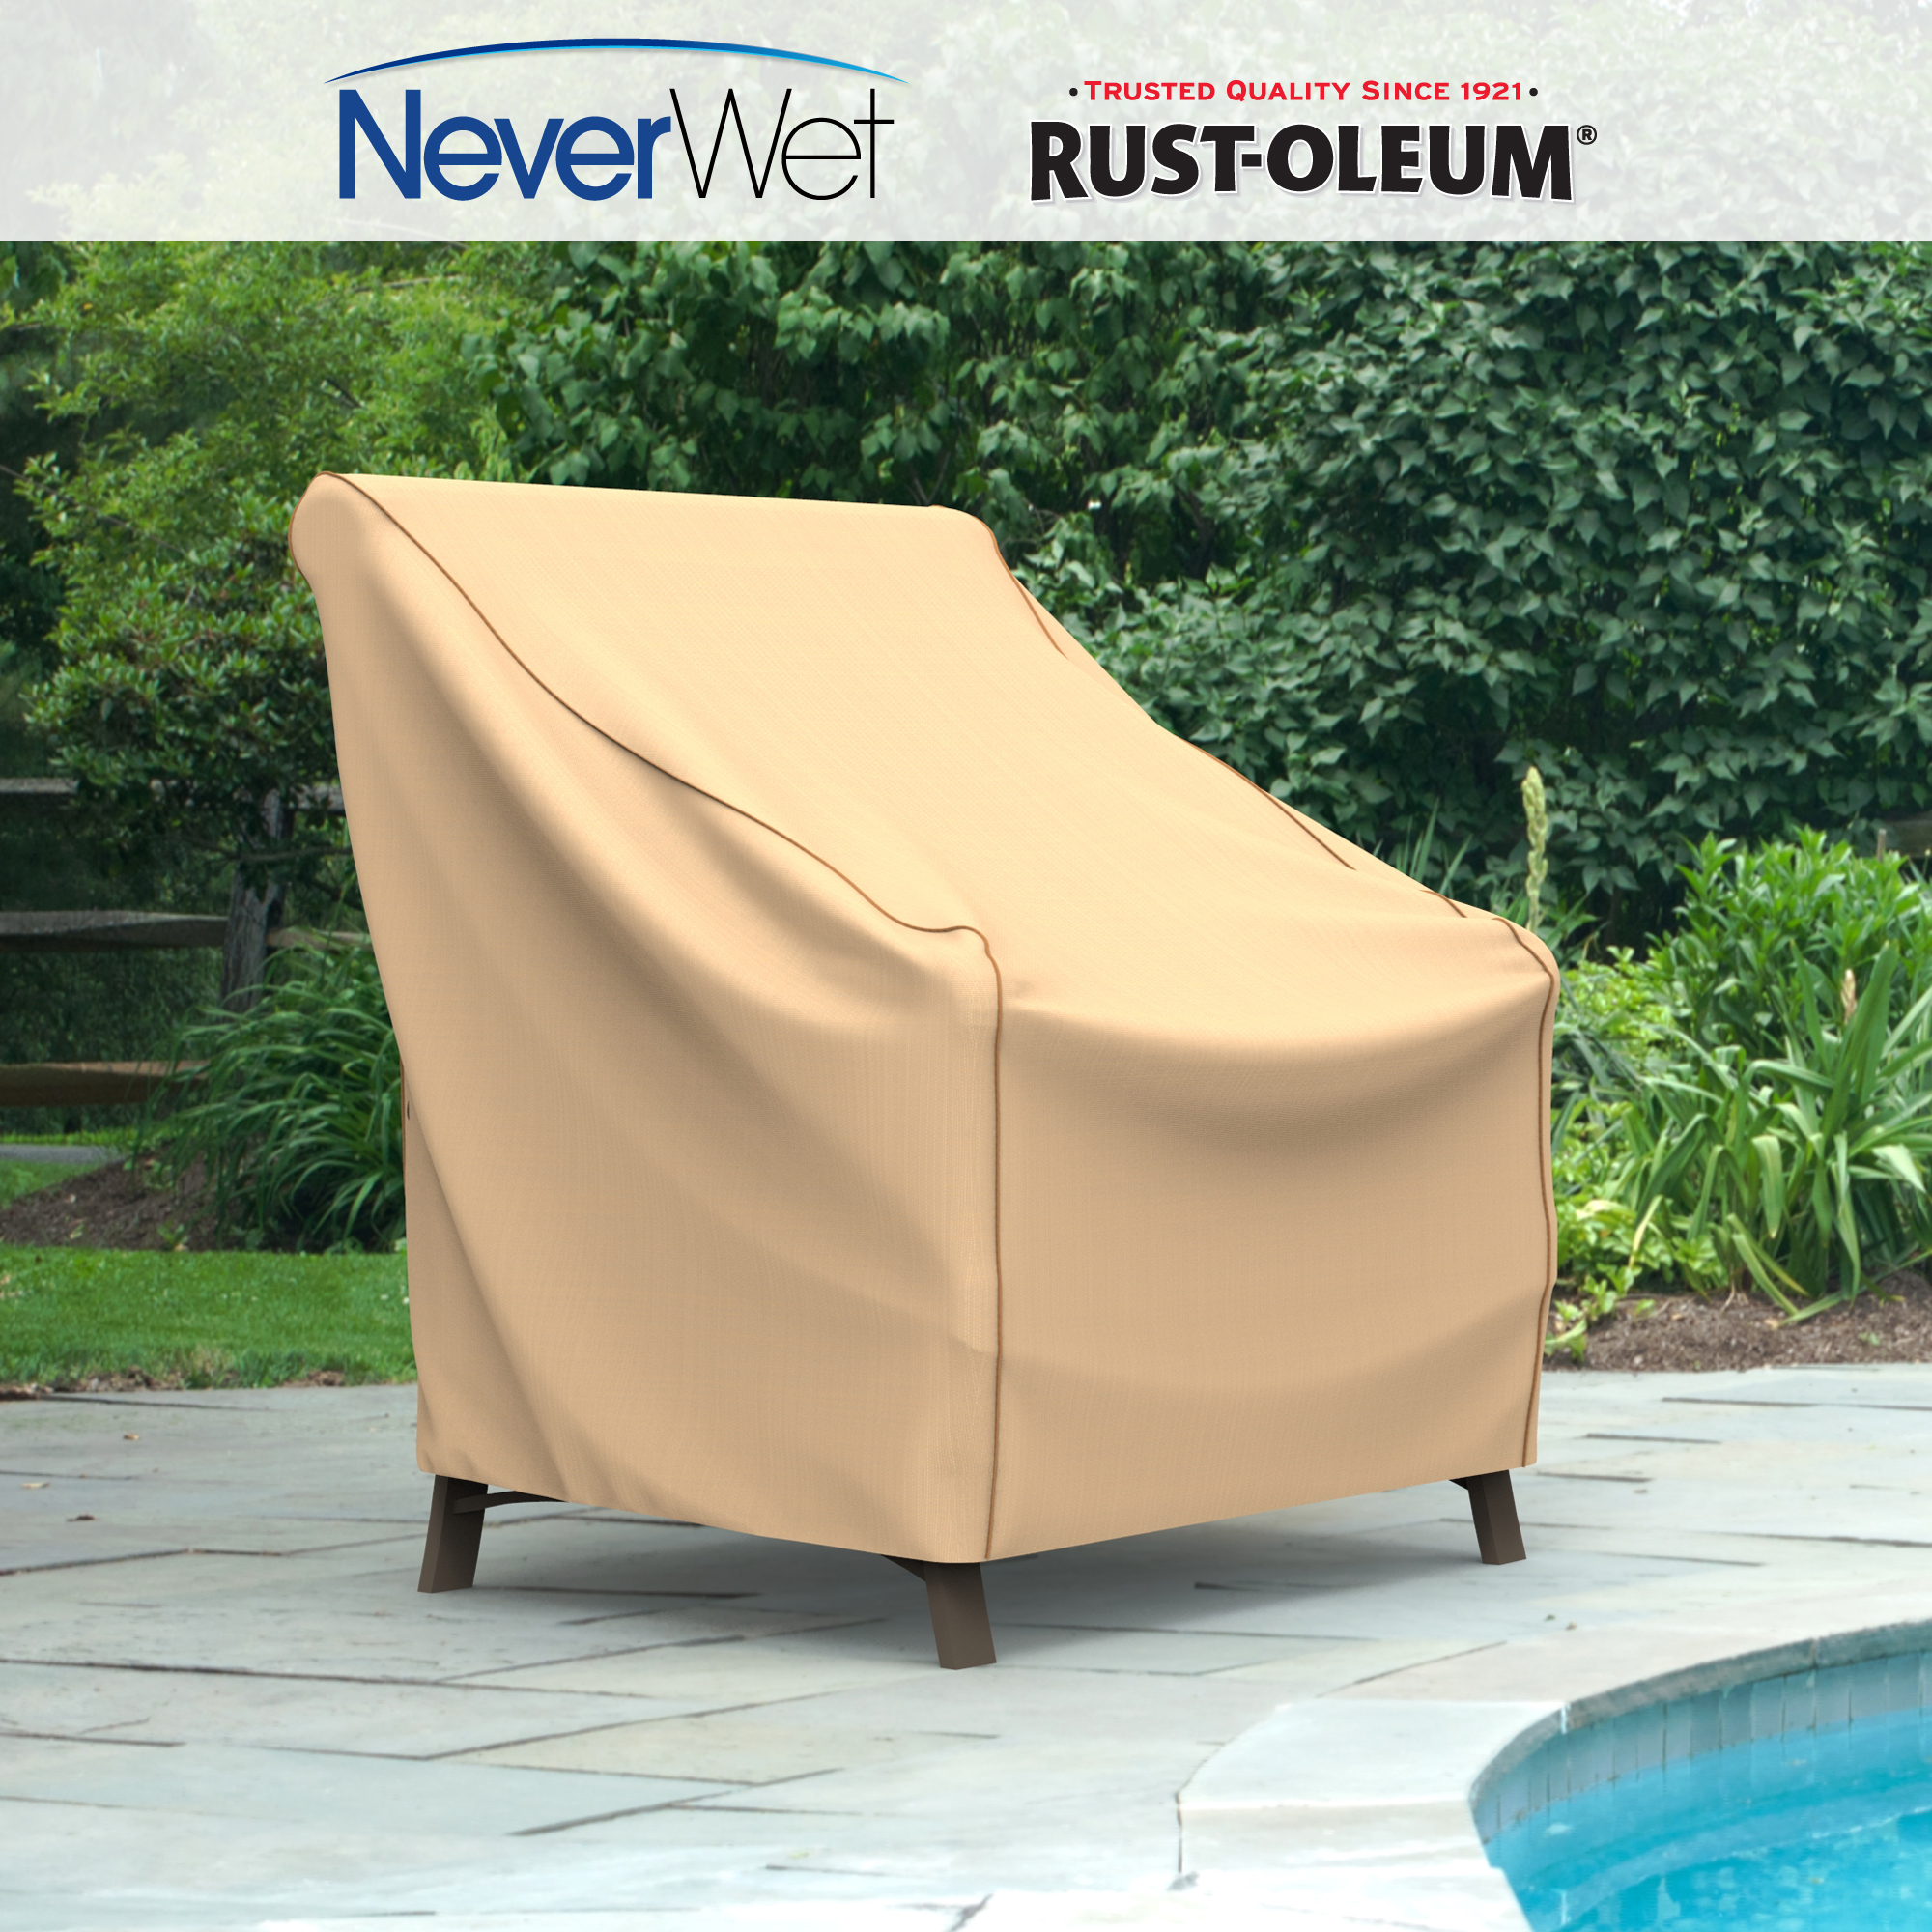 Cover for outdoor furniture Outdoor Lounge Walmart Budge Large Tan Patio Outdoor Chair Cover Neverwet Walmartcom